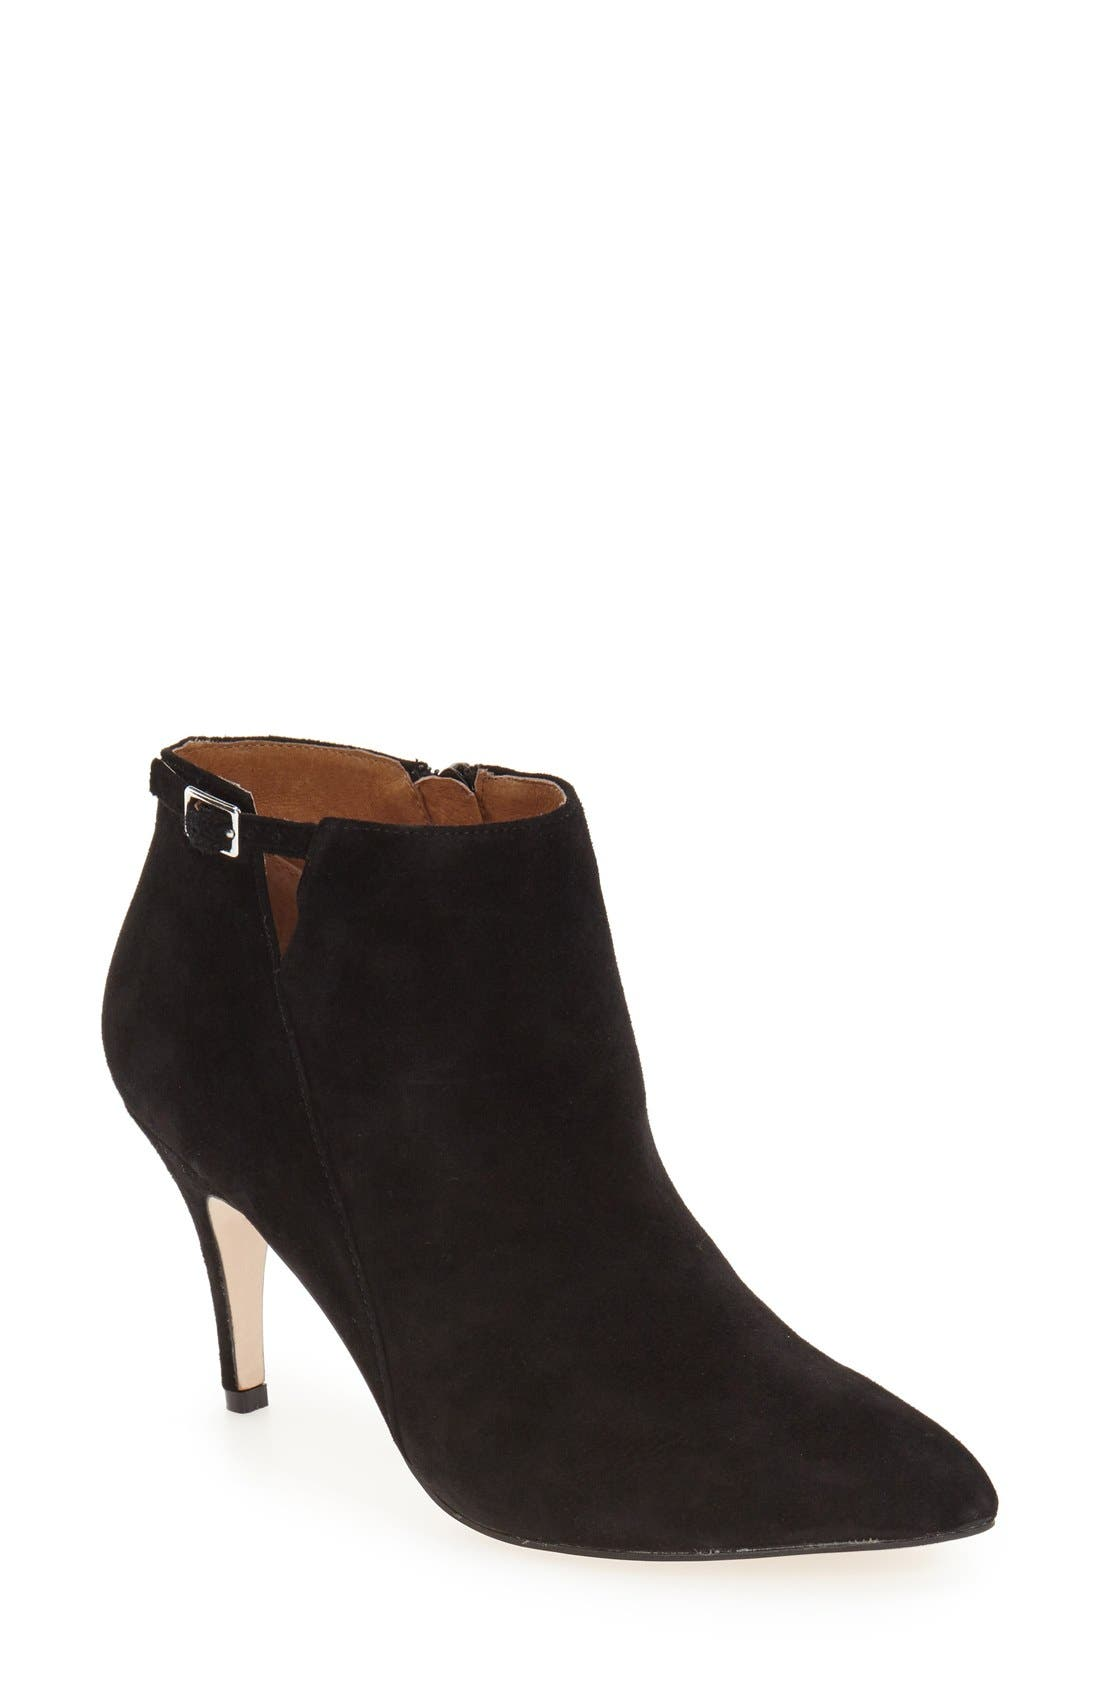 CORSO COMO 'Roster' Pointy Toe Bootie